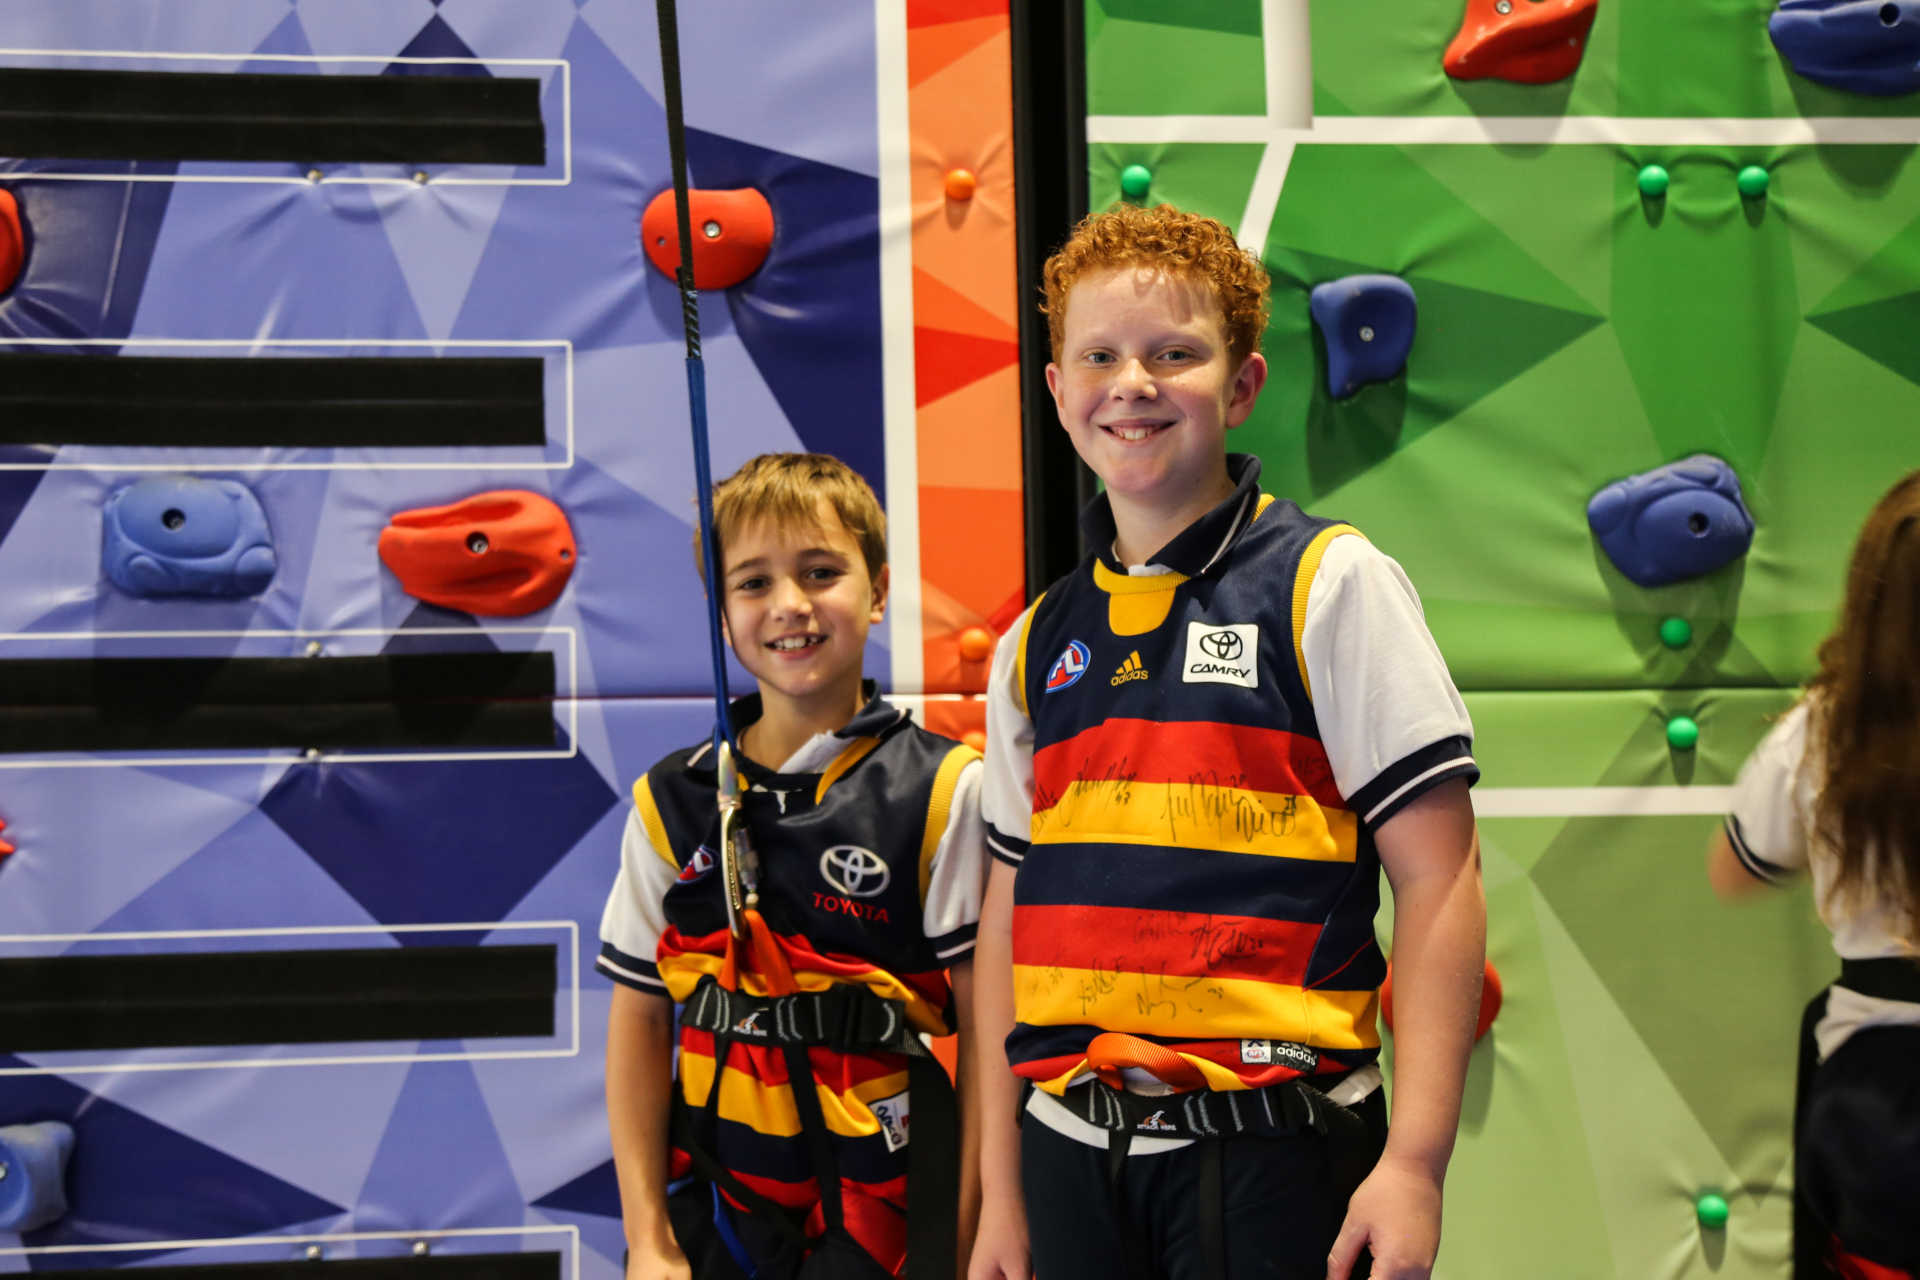 Two boys ready for climbing